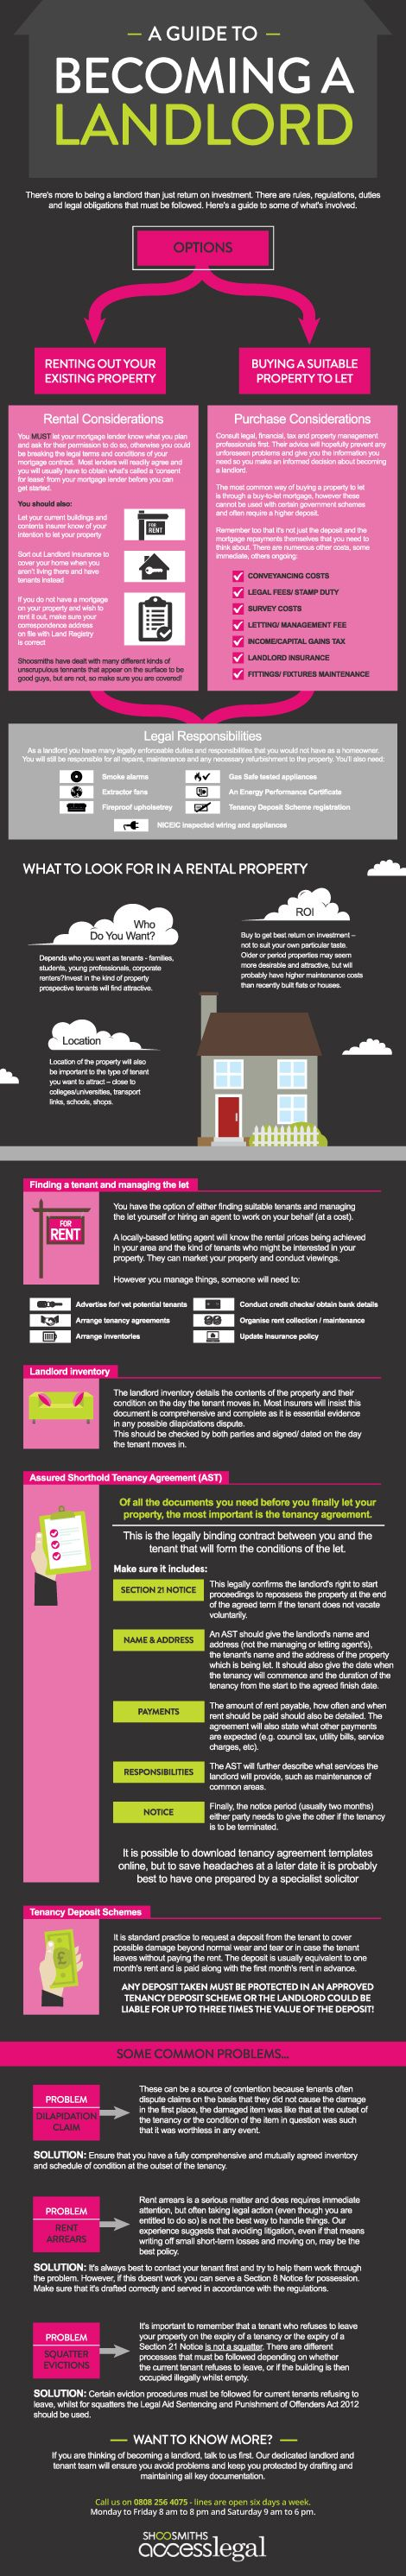 Infographic about how to become a landlord